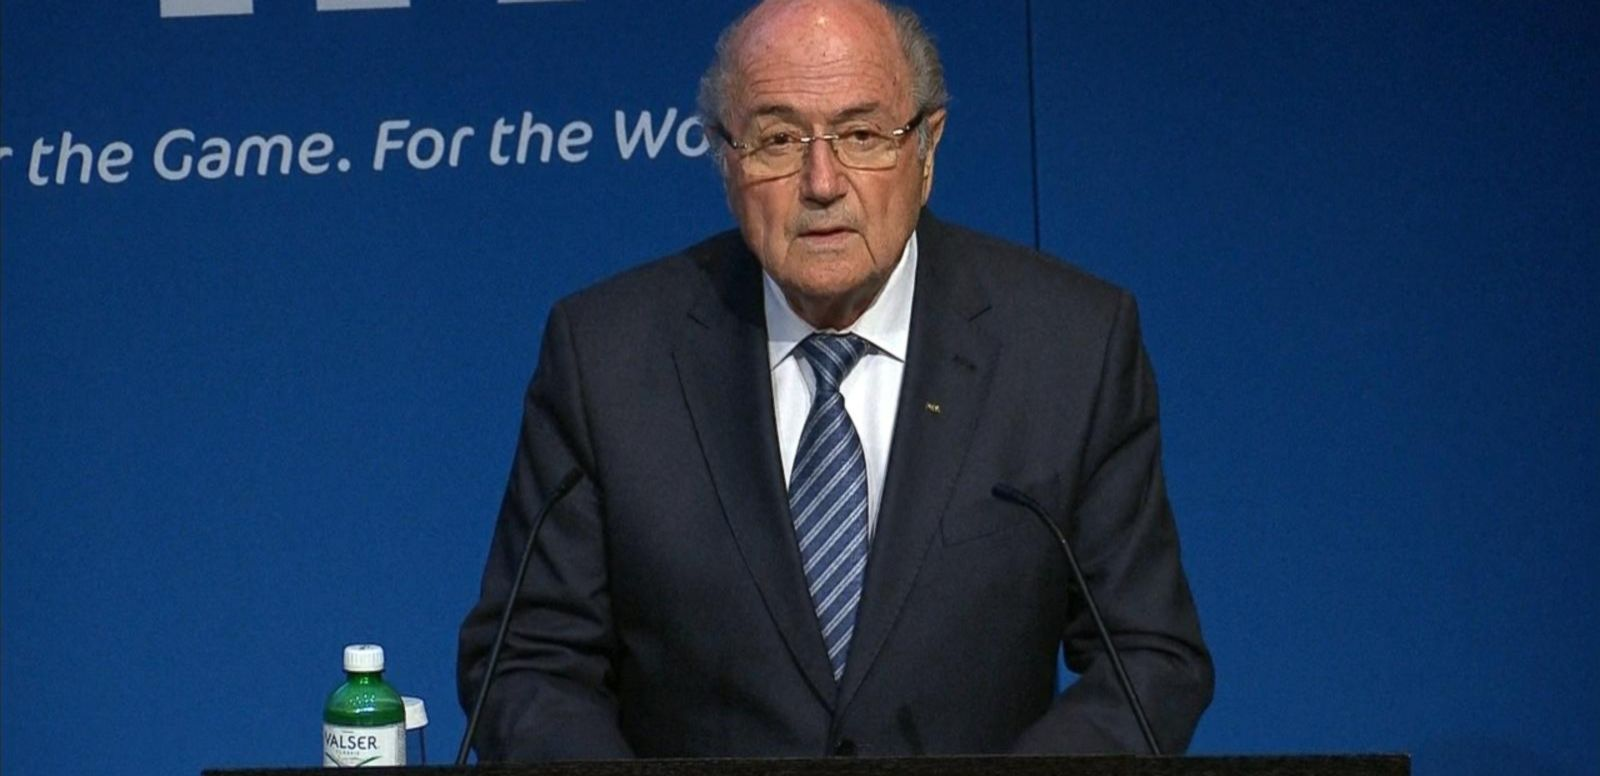 VIDEO: FIFA President Sepp Blatter Resigns Unexpectedly